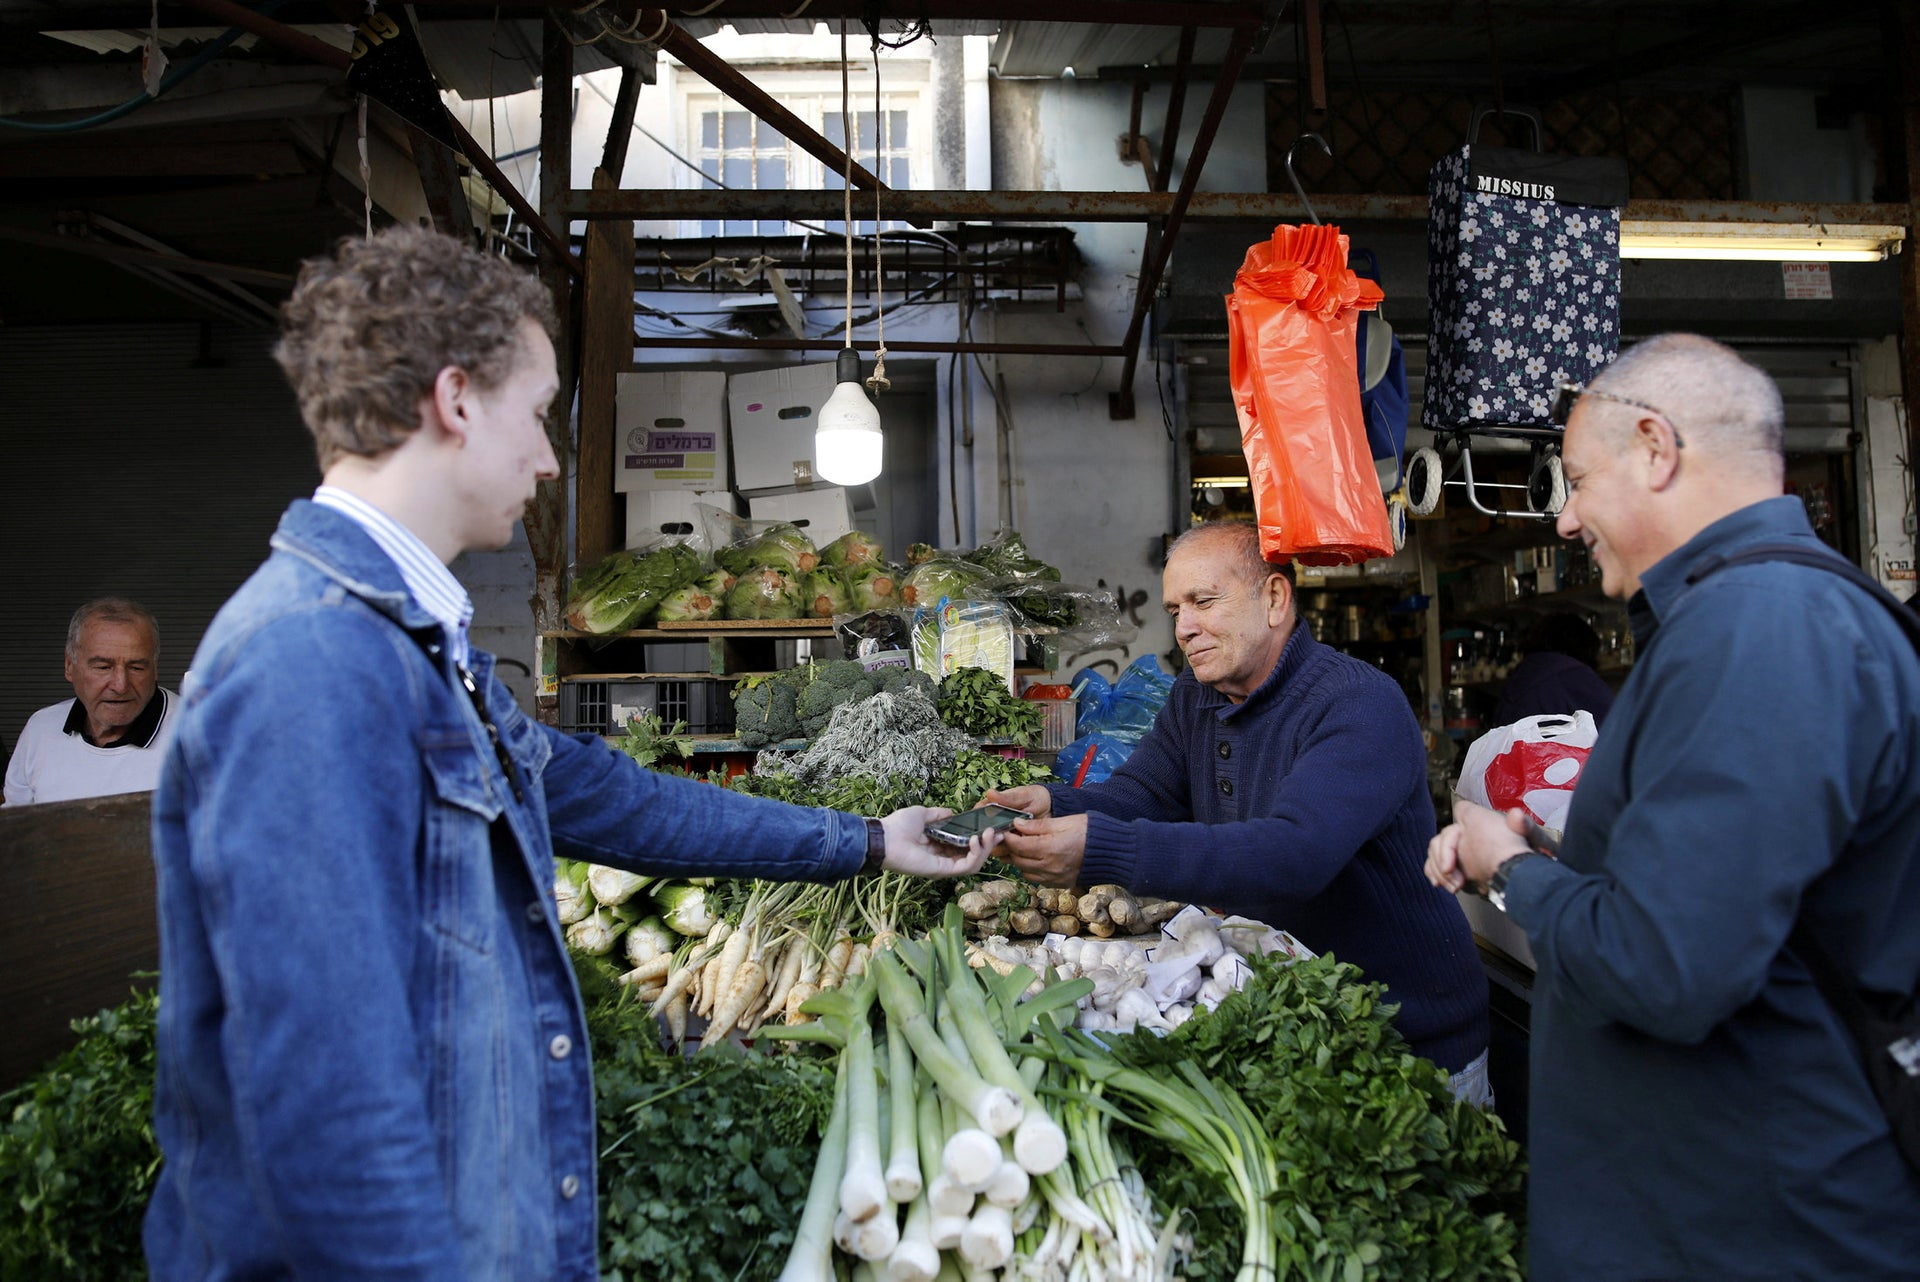 At the Carmel market in Tel Aviv, tourists and a market vendor participate in a special training session as part of the initiative by the municipality.